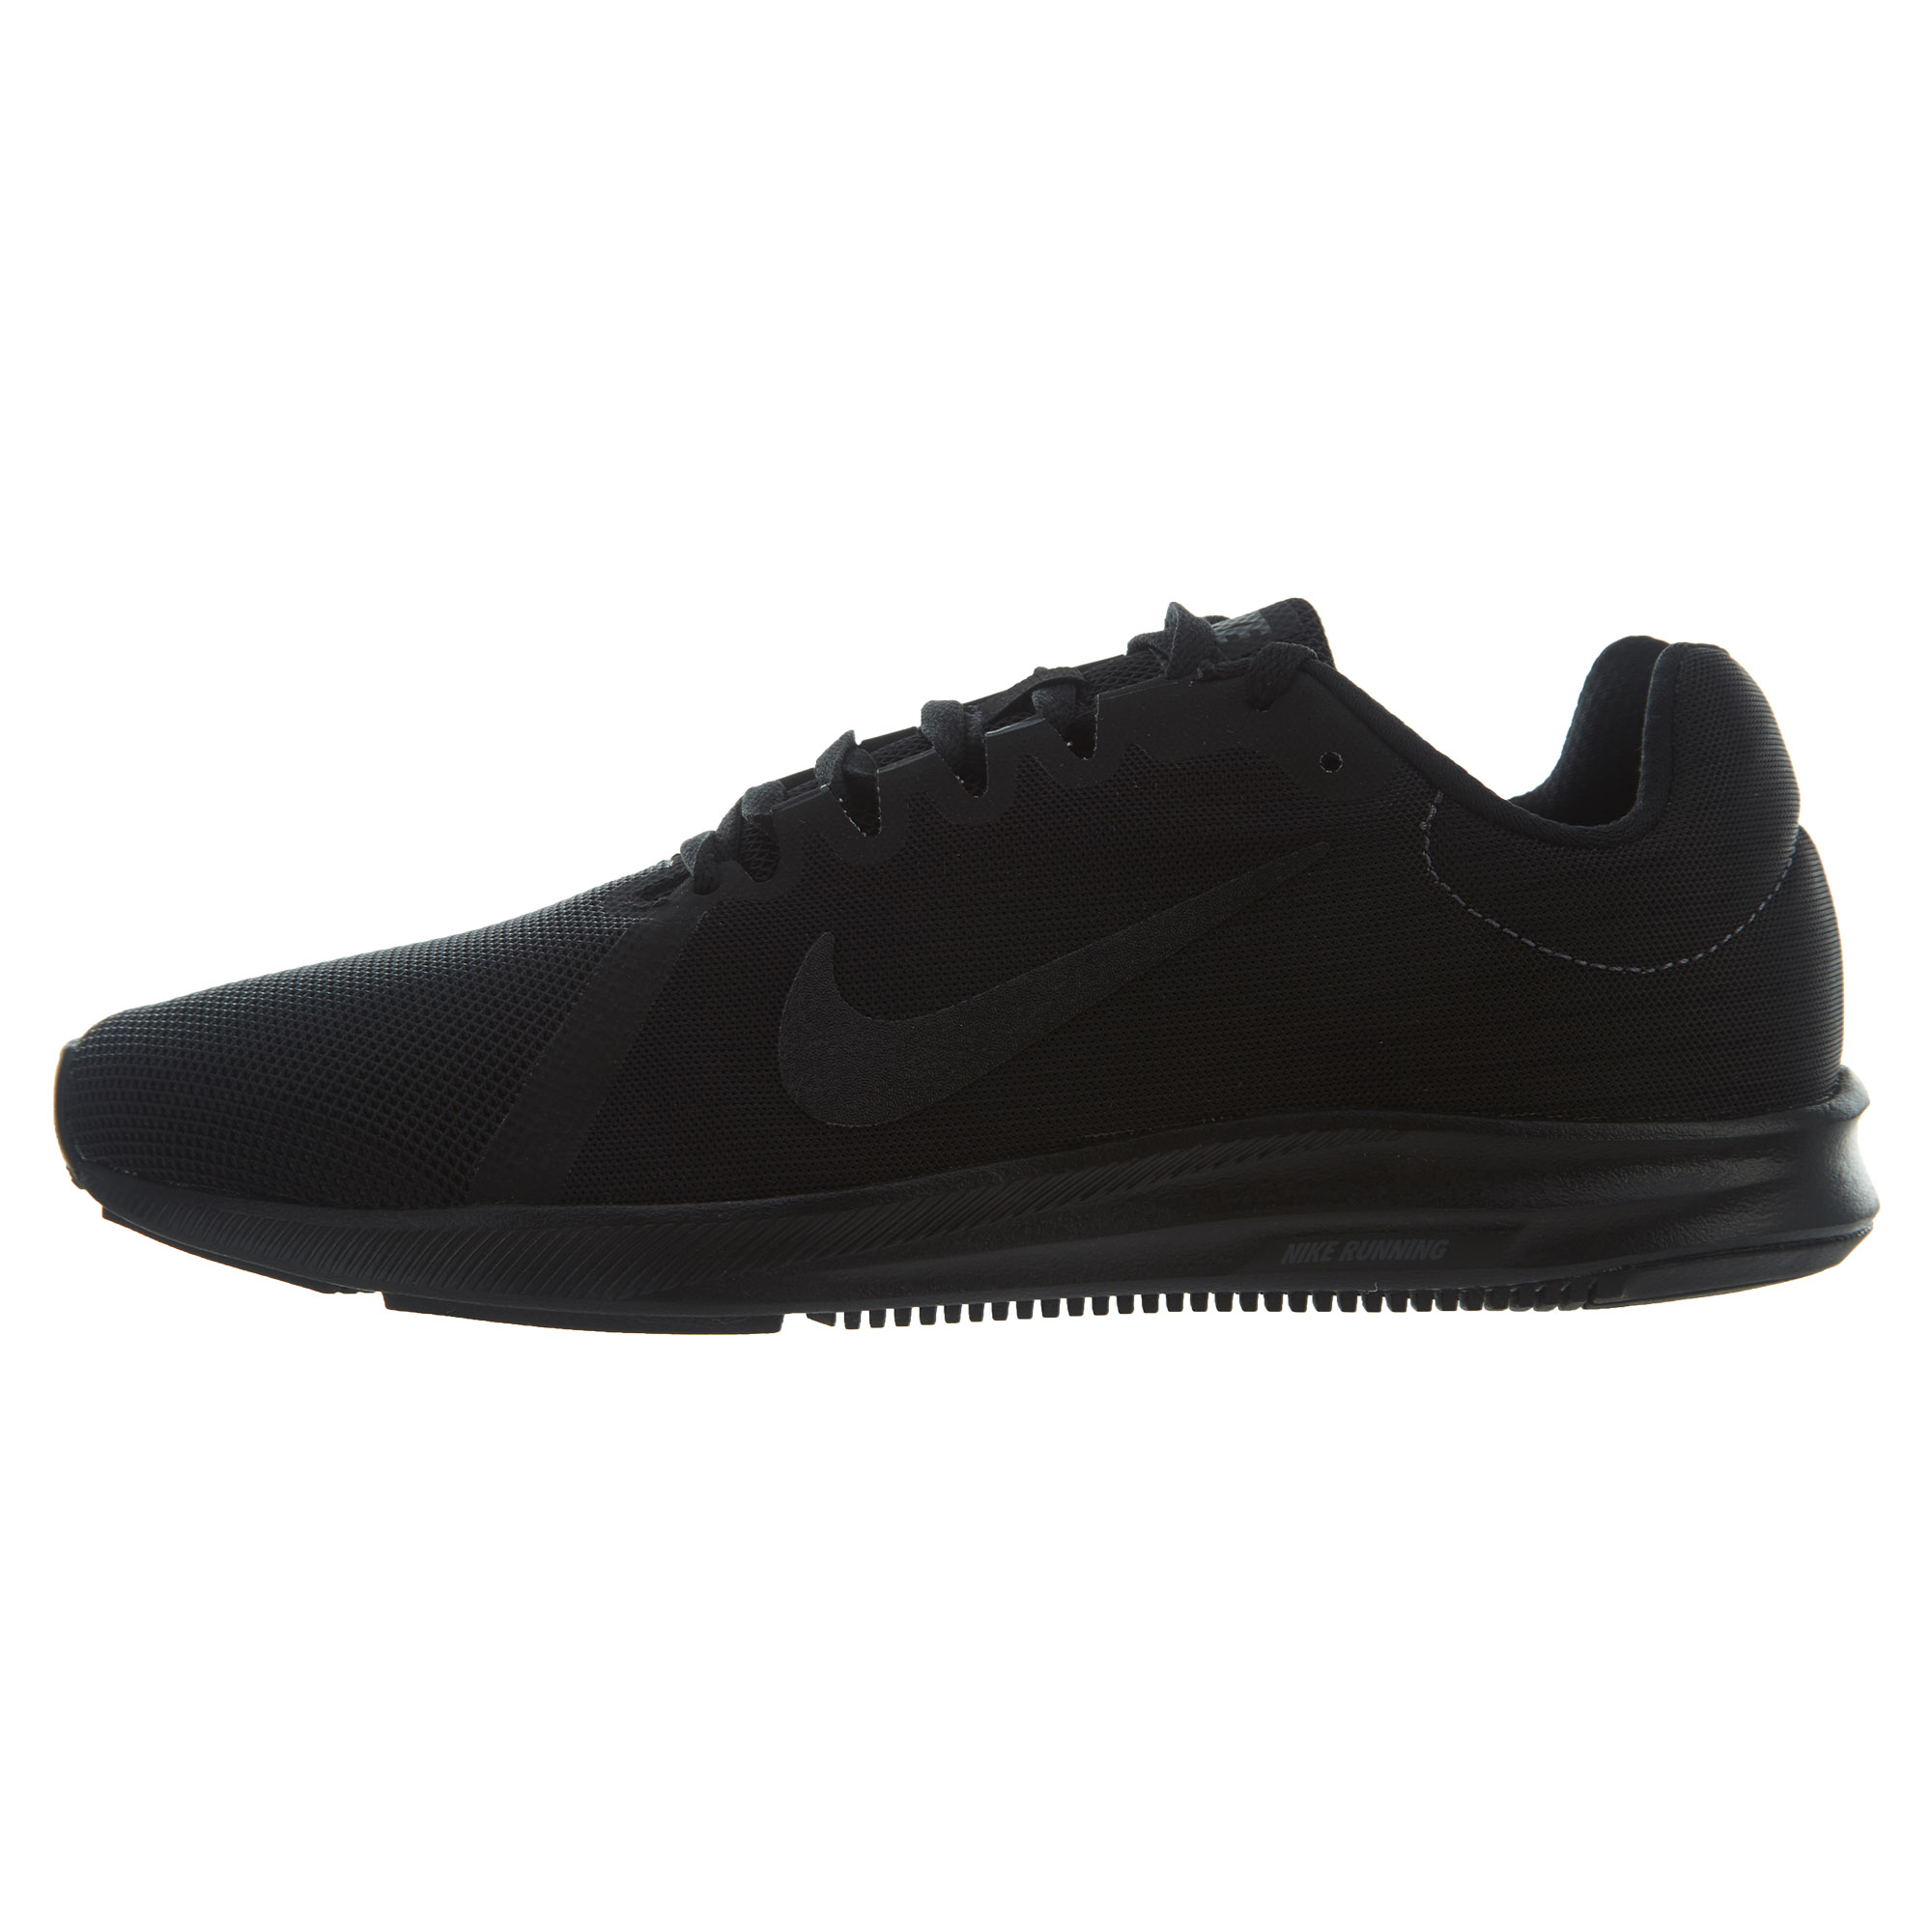 timeless design 68989 92d62 Details about Nike Mens Downshifter 8 Running Shoes 908984-002